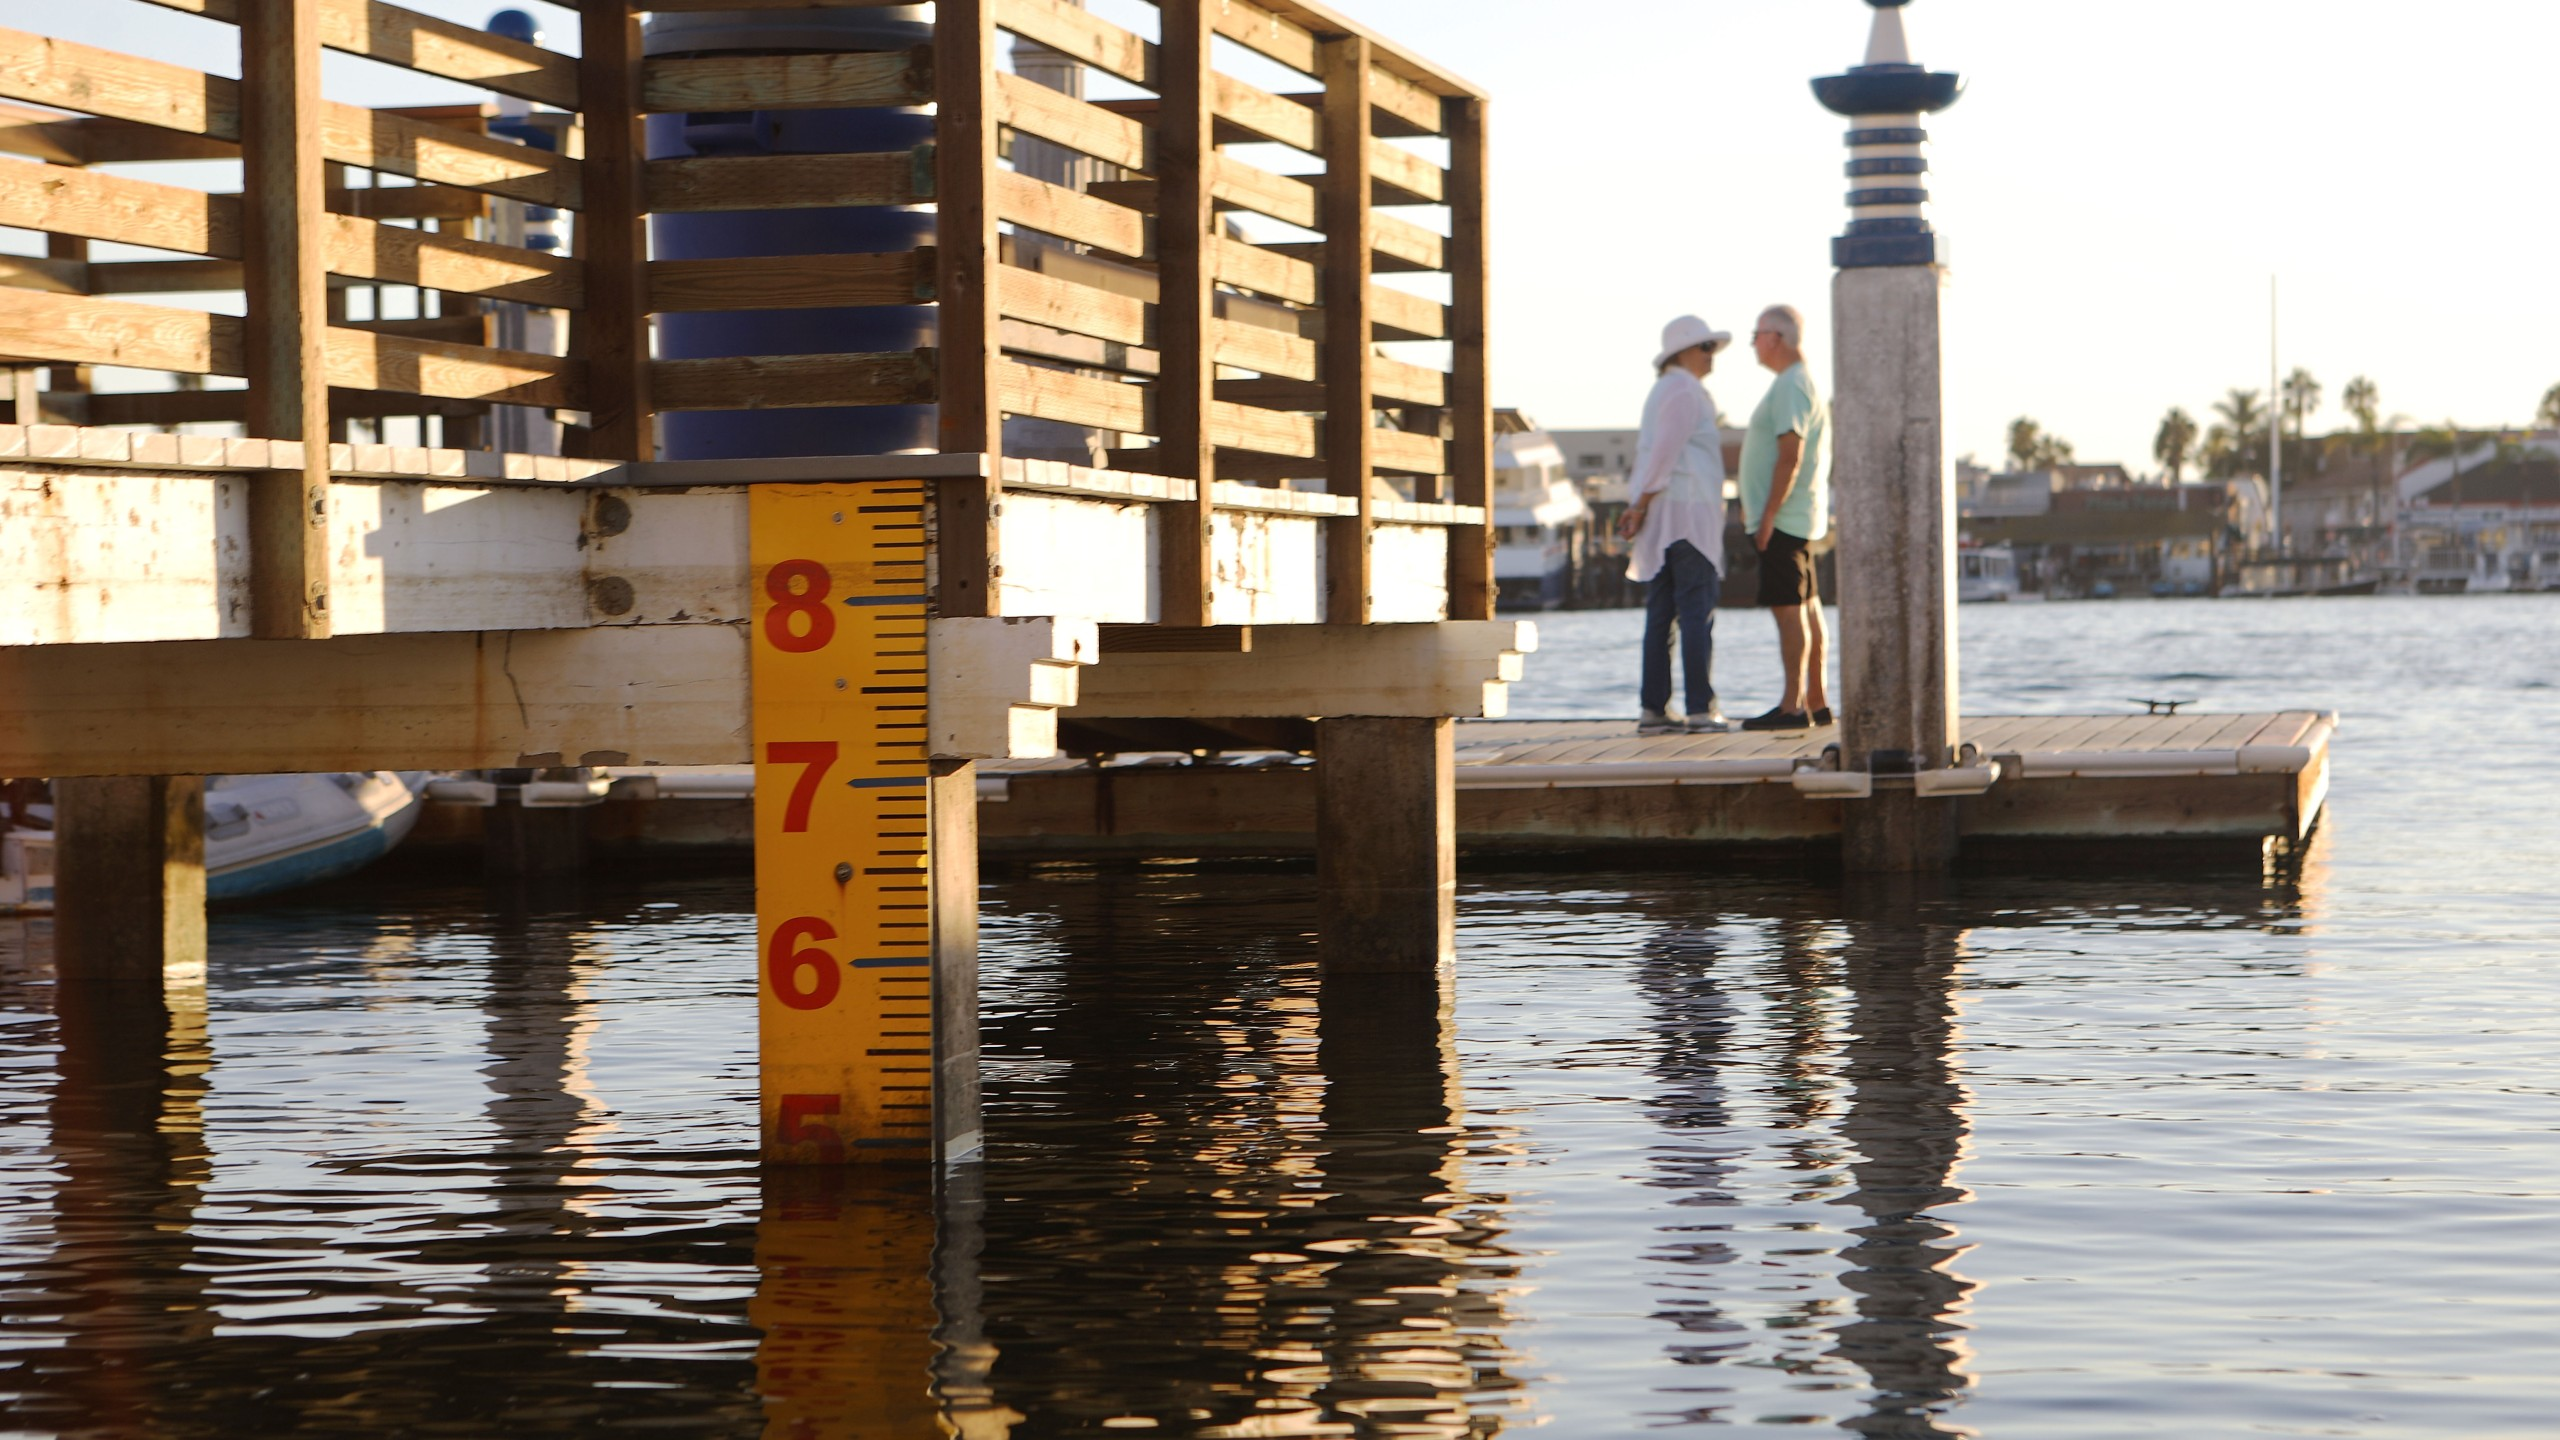 A water level marker is attached to a dock on Orange County's Balboa Island on Oct. 20, 2018, in Newport Beach, after officials raised the island's sea walls by nine inches. (Credit: Mario Tama/Getty Images)